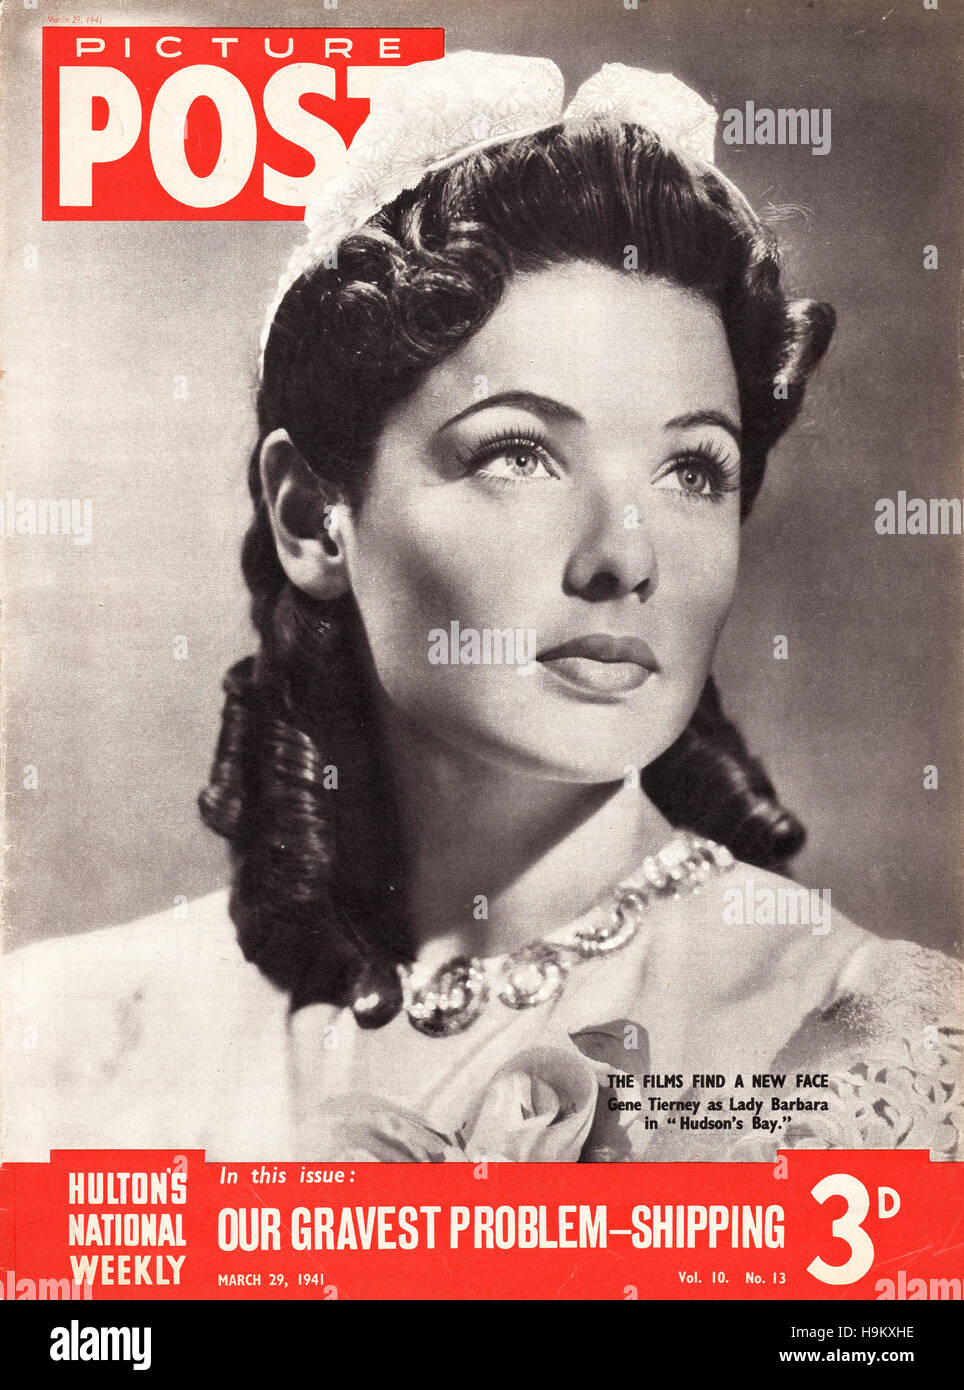 1941 Picture Post Actress Gene Tierney - Stock Image